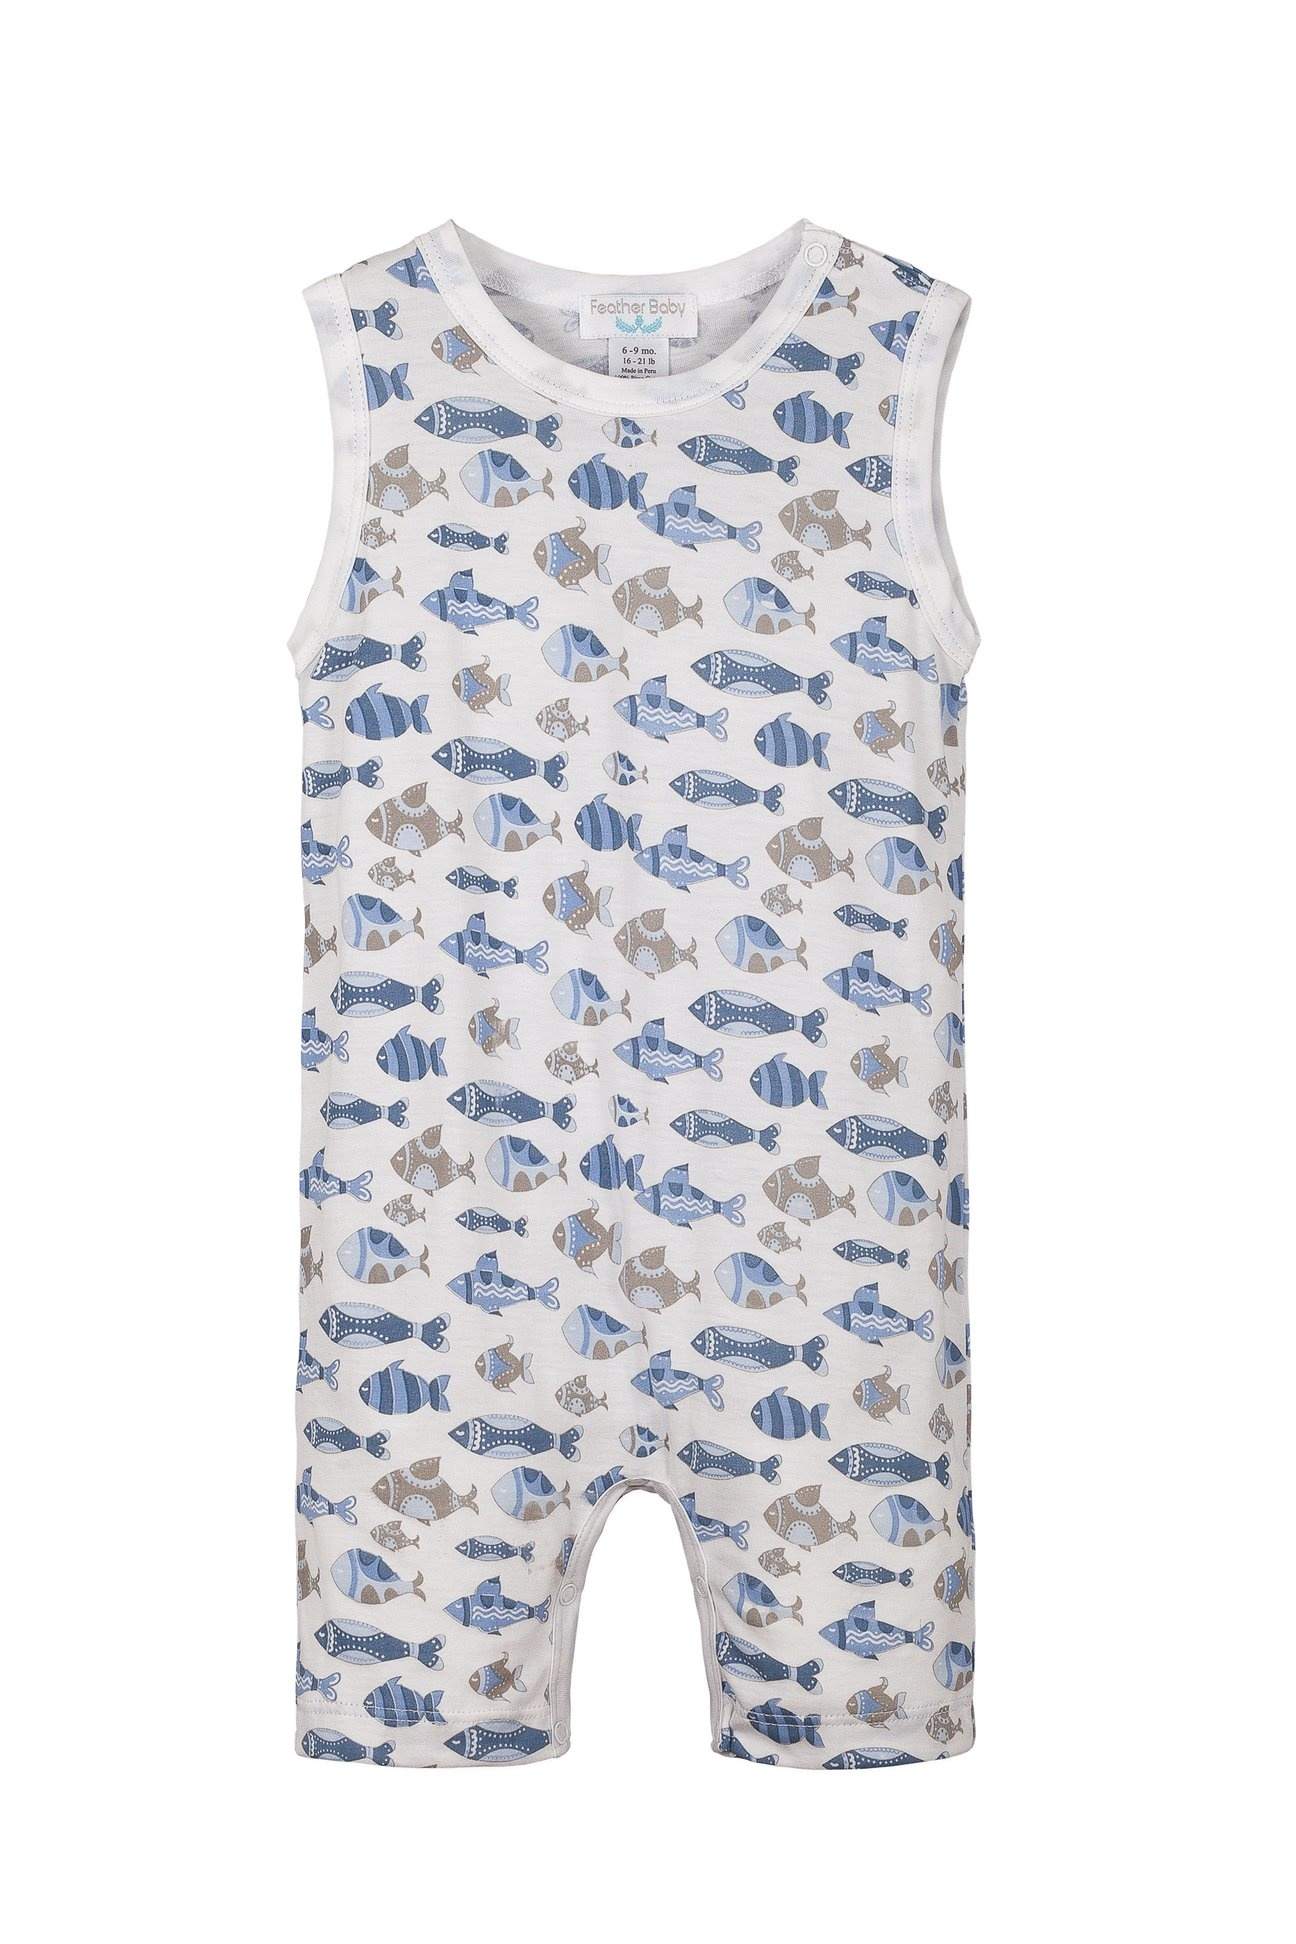 Feather Baby Tanked Romper- Skinny Fish- Blue on white.